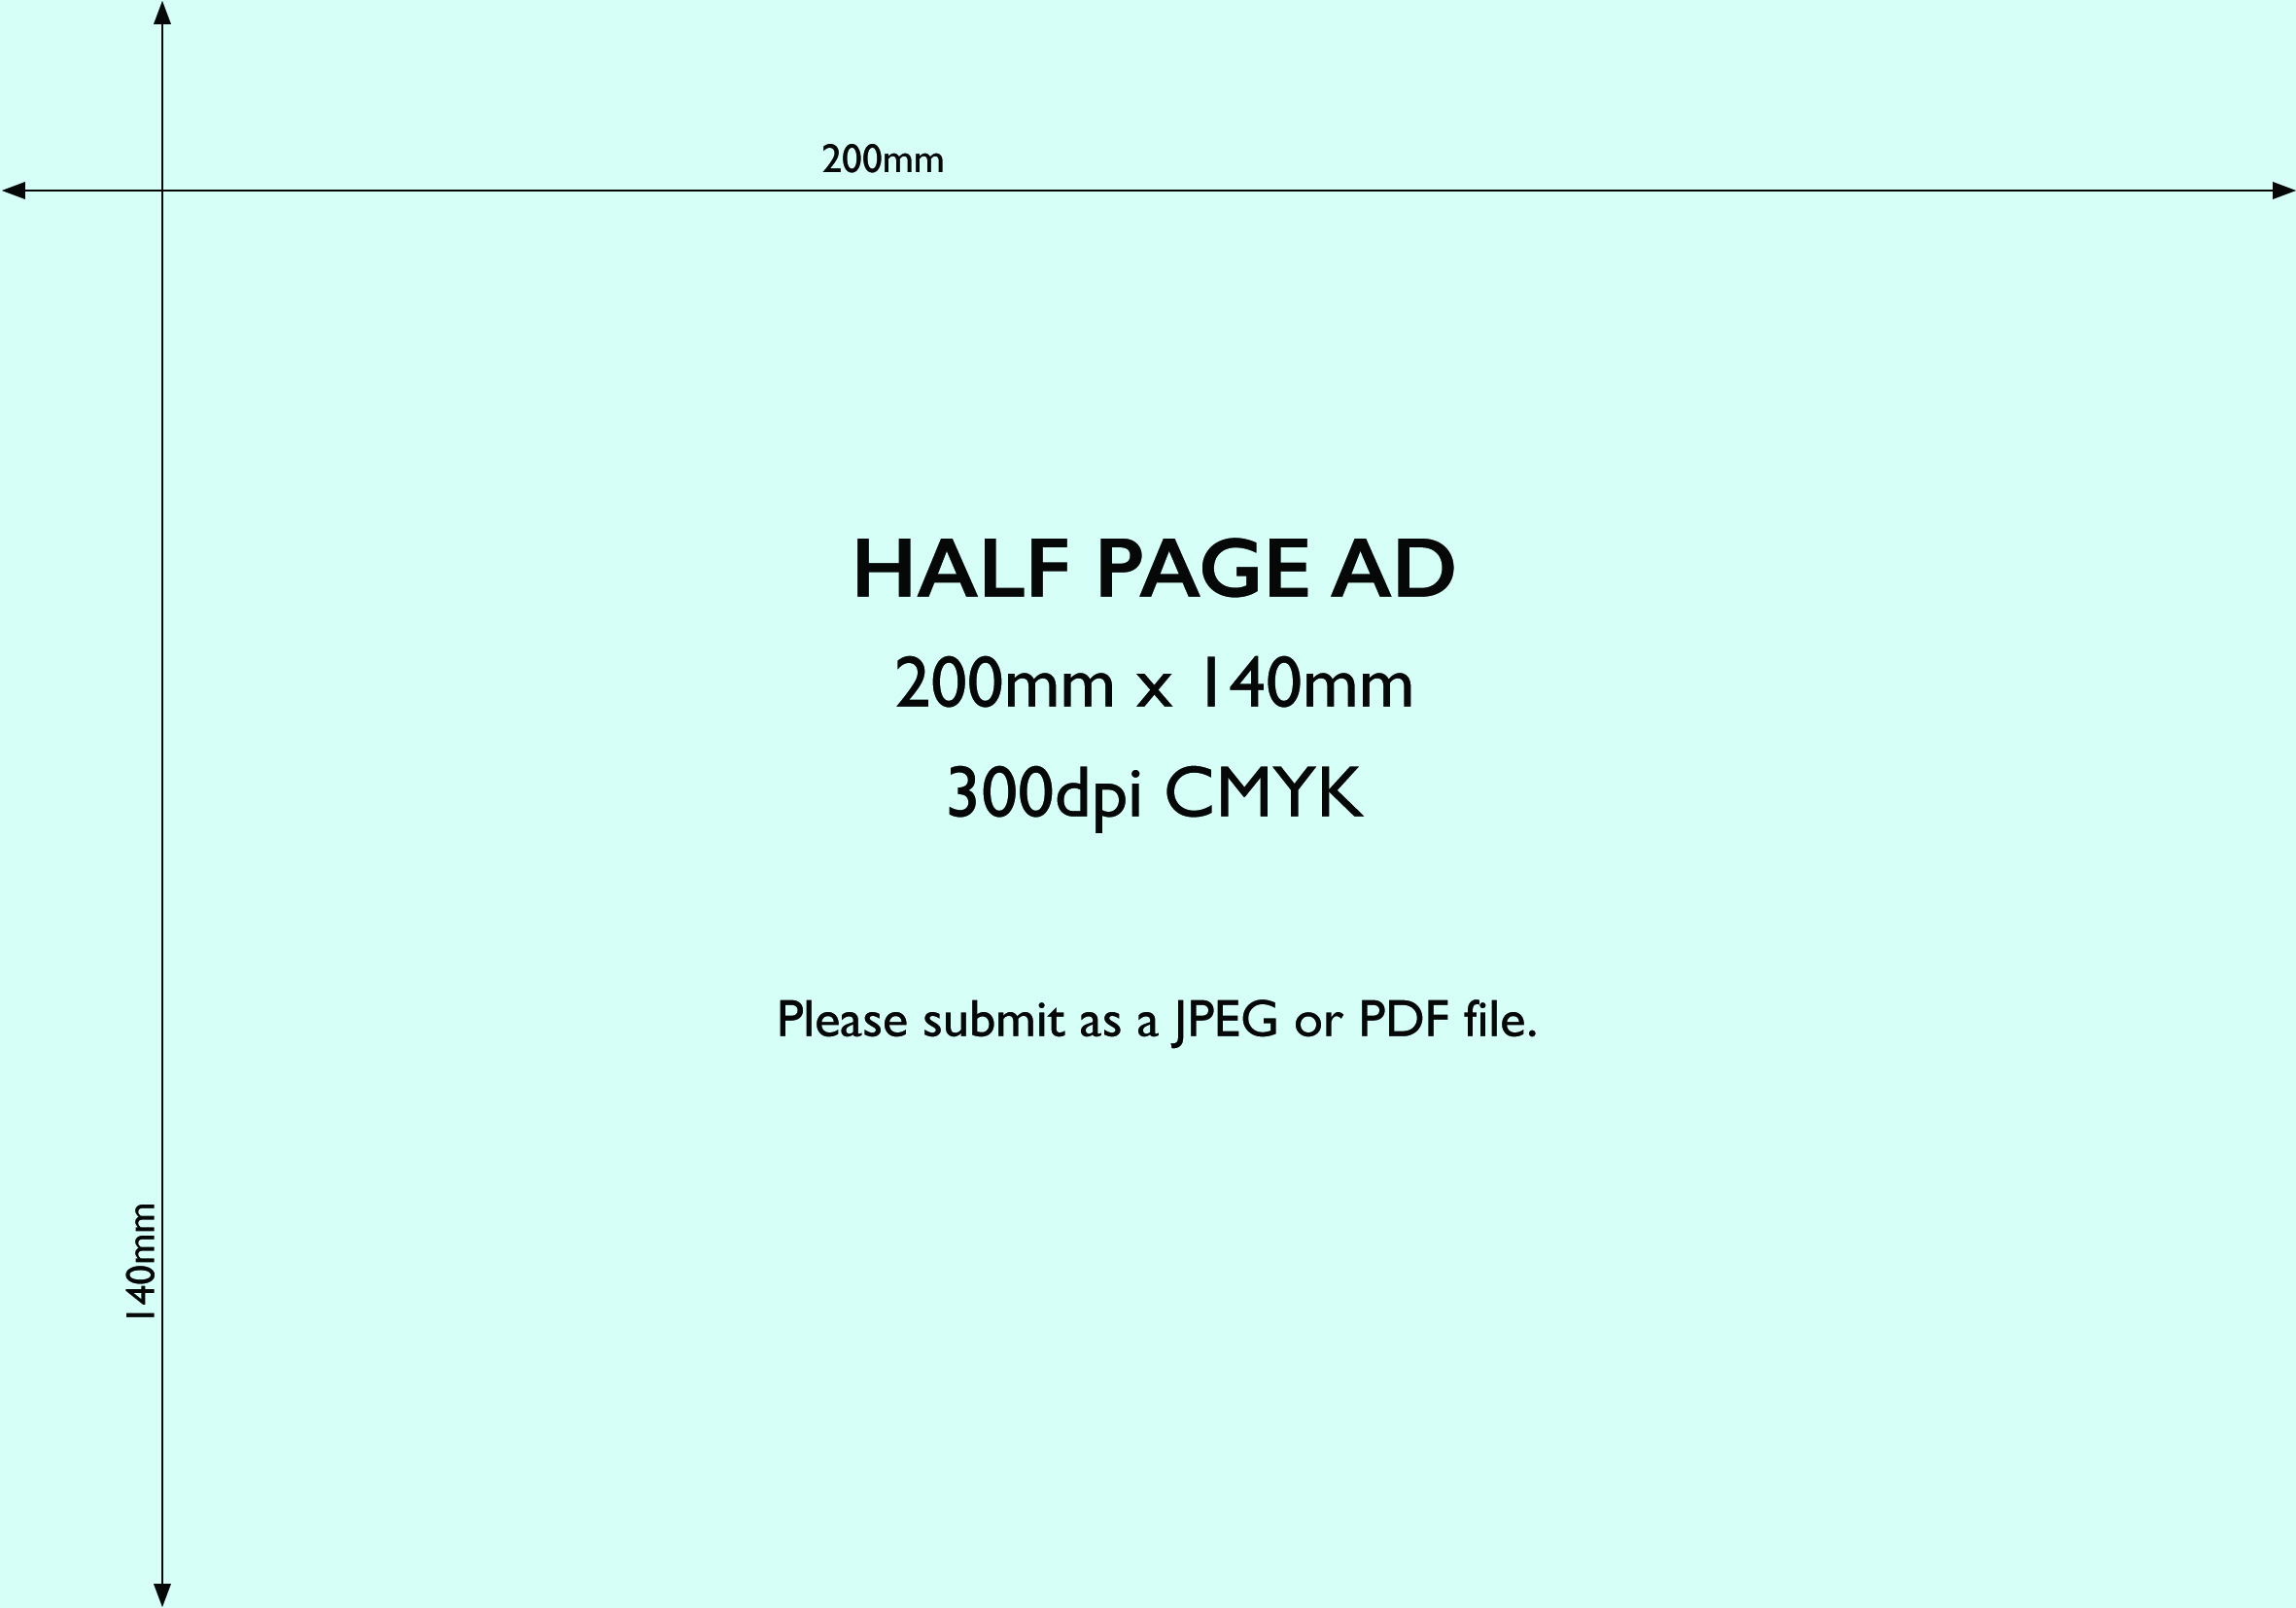 Advertise in the esdc magazine half page ad template wide pronofoot35fo Image collections